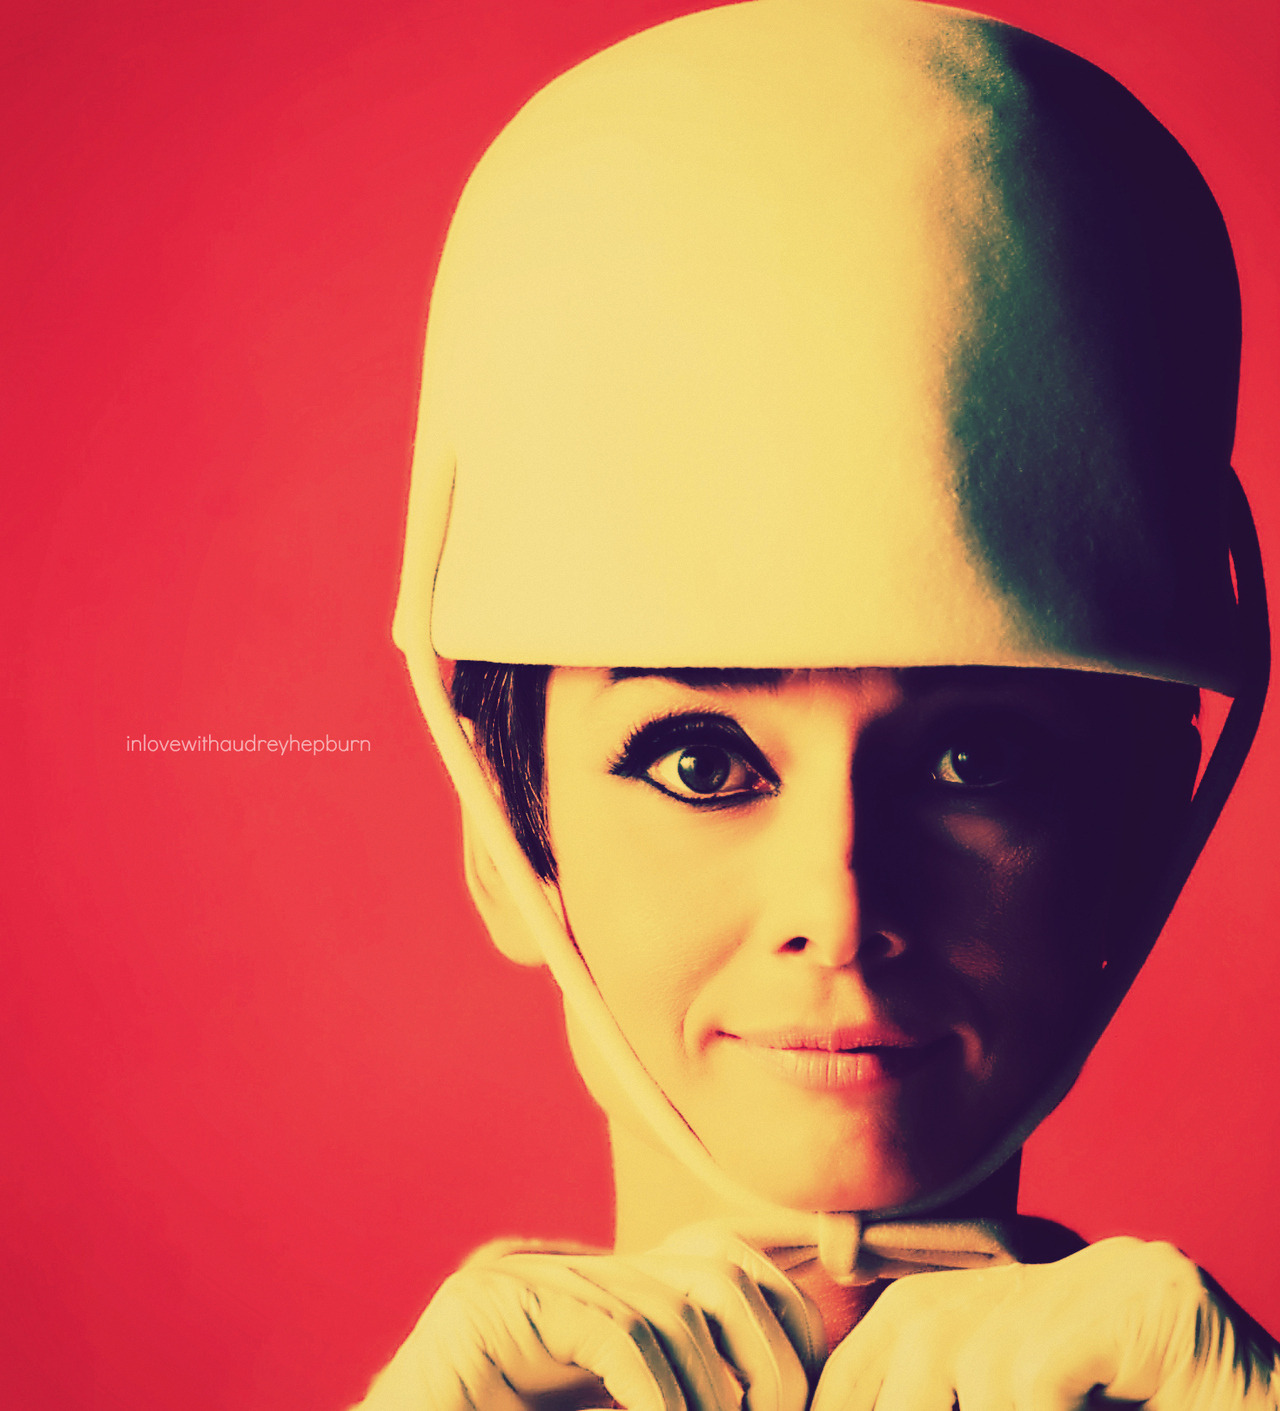 inlovewithaudreyhepburn:  Audrey Hepburn ♥ How to Steal a Million